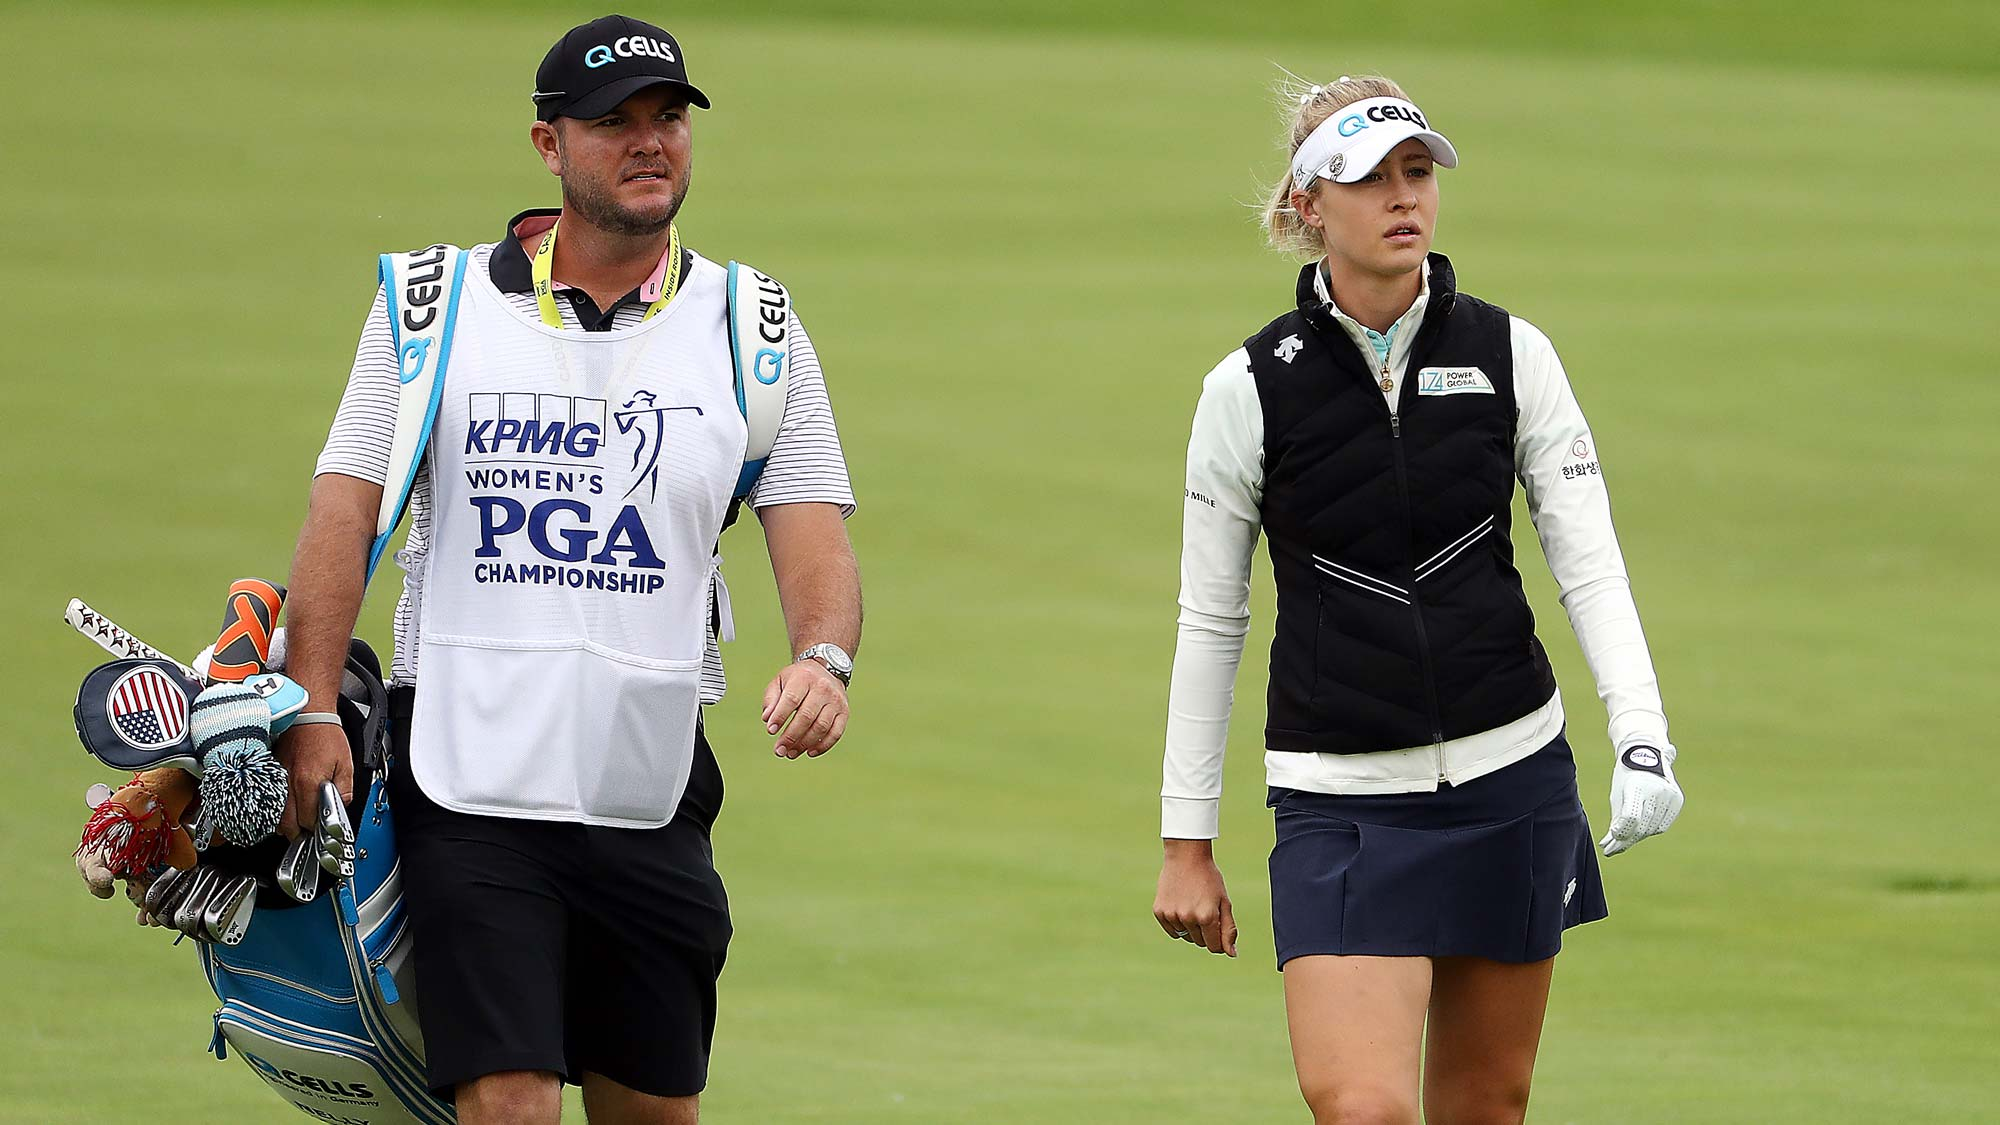 Nelly Korda walks up the fairway with her caddie on the 1st hole during the third round of the KPMG Women's PGA Championship